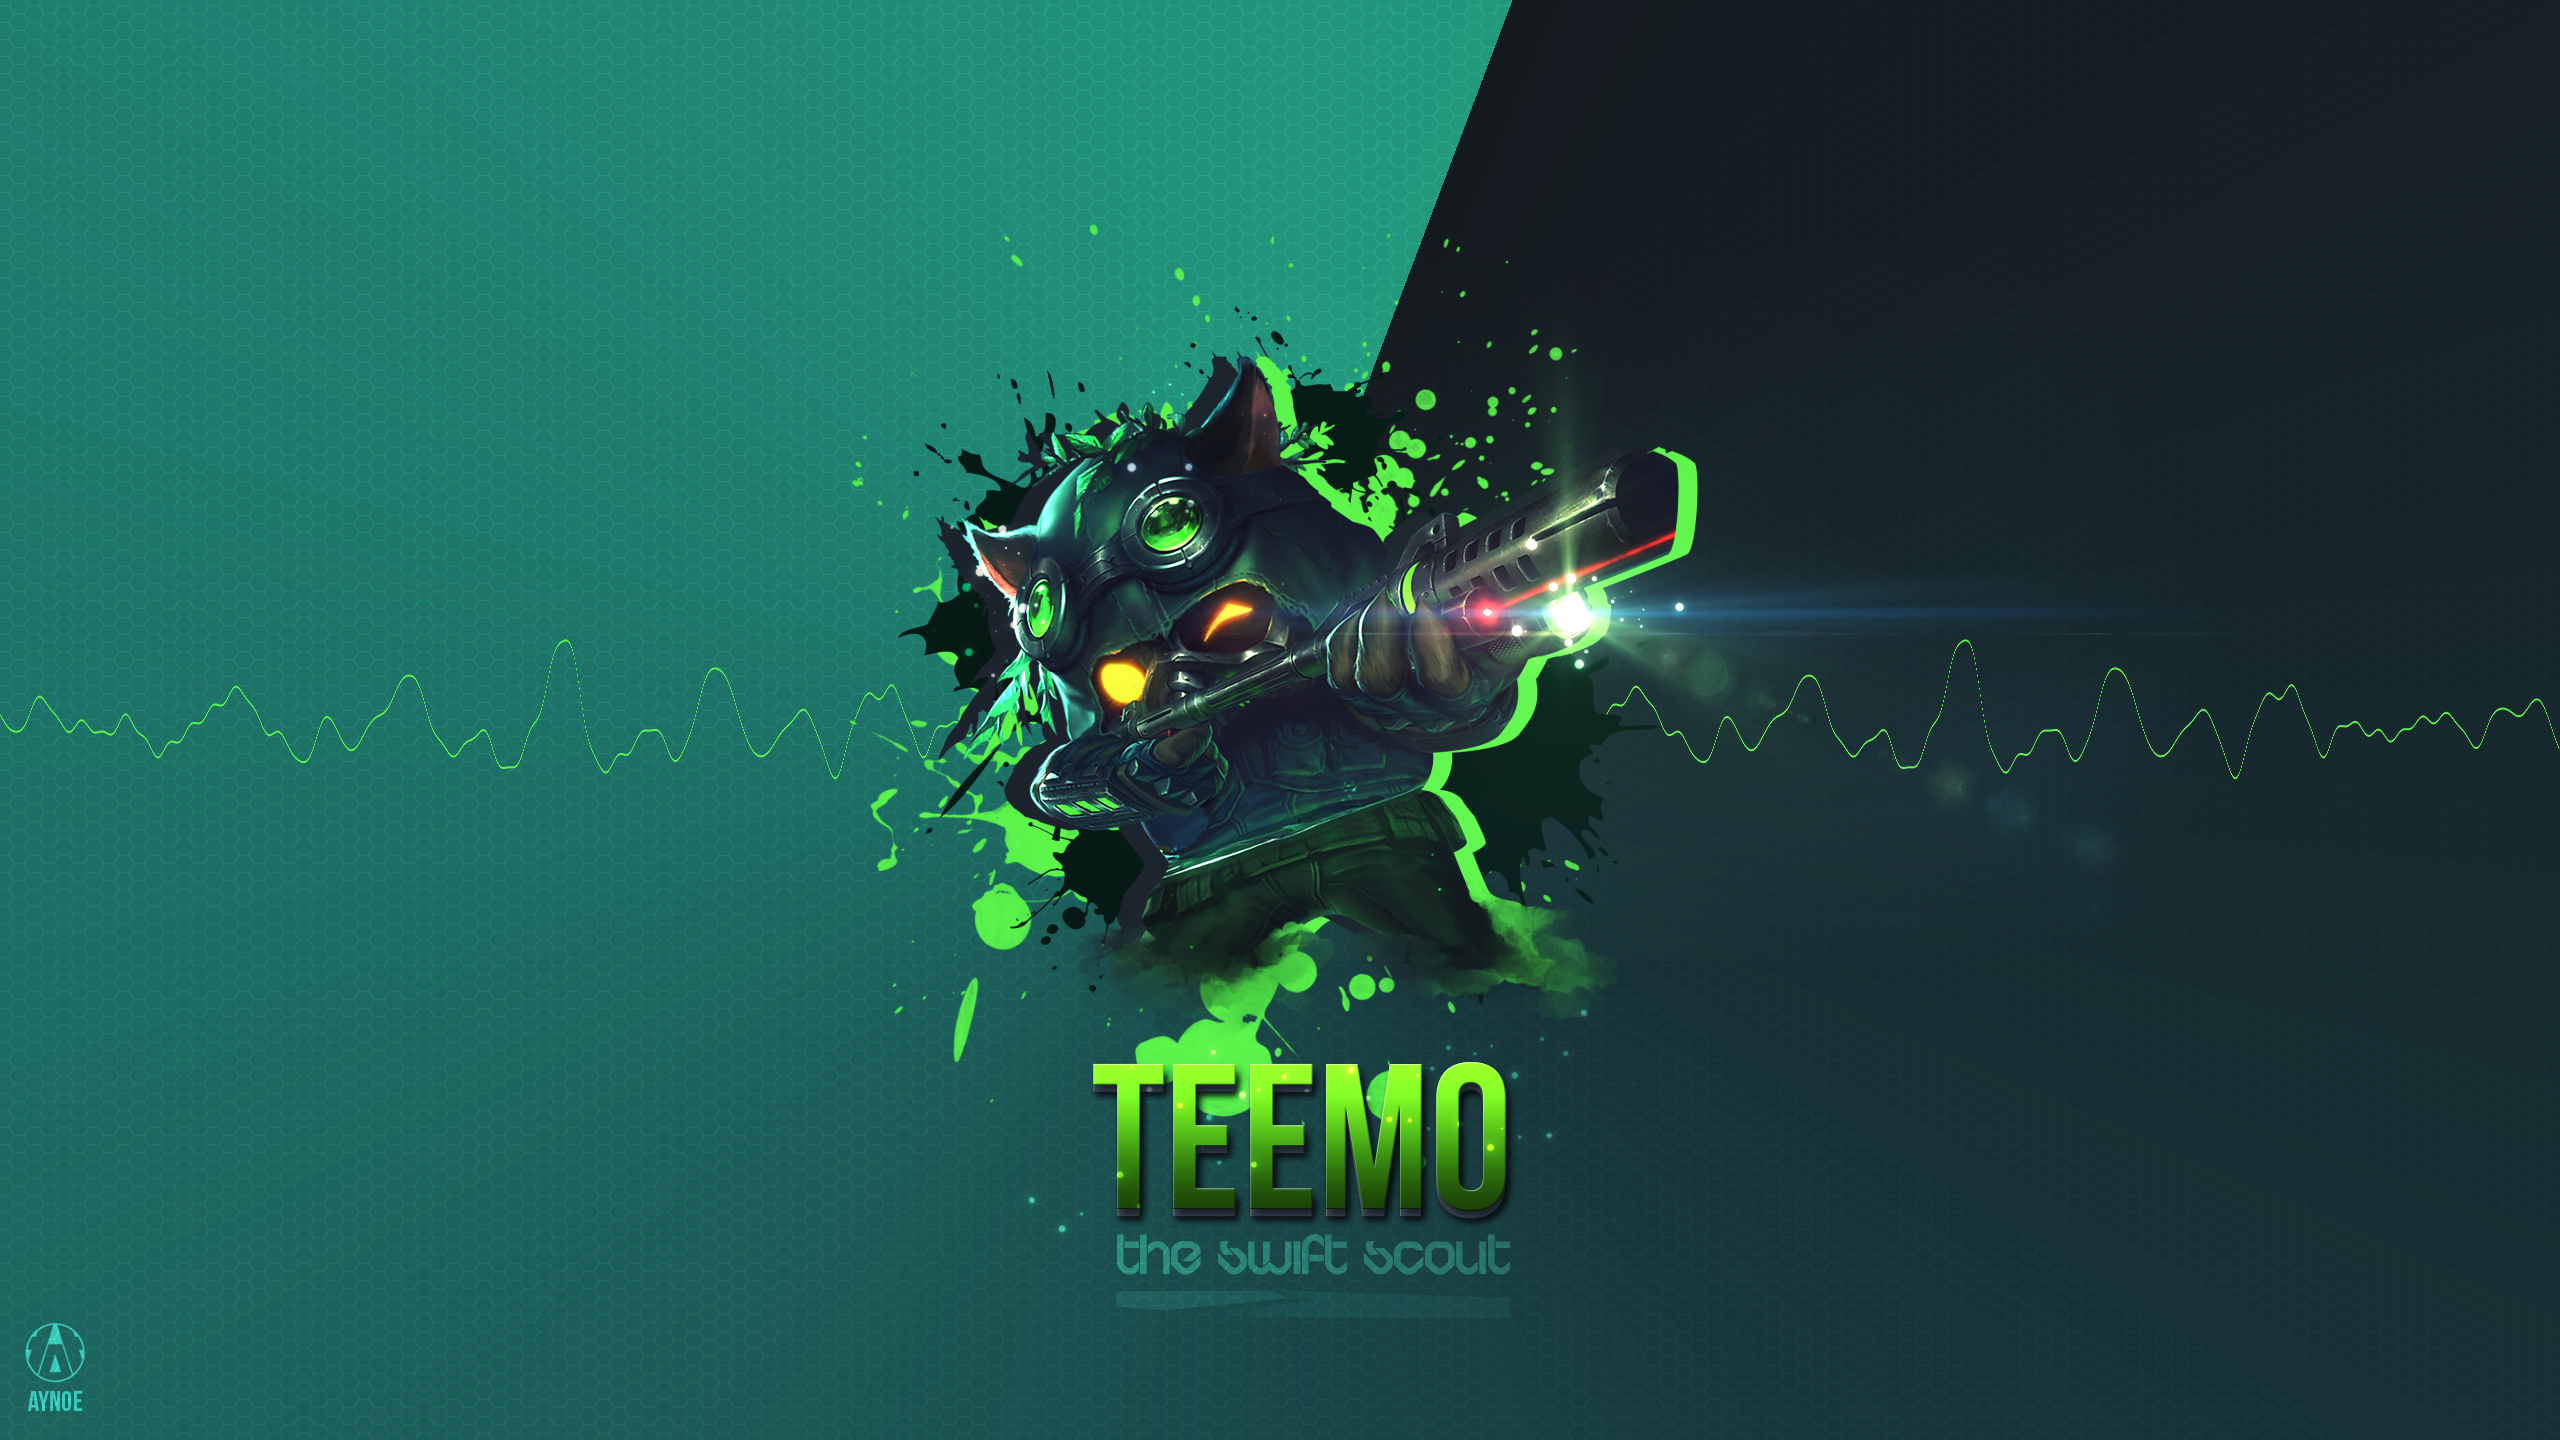 General 2560x1440 League of Legends Twitch PC gaming Teemo League of Legends